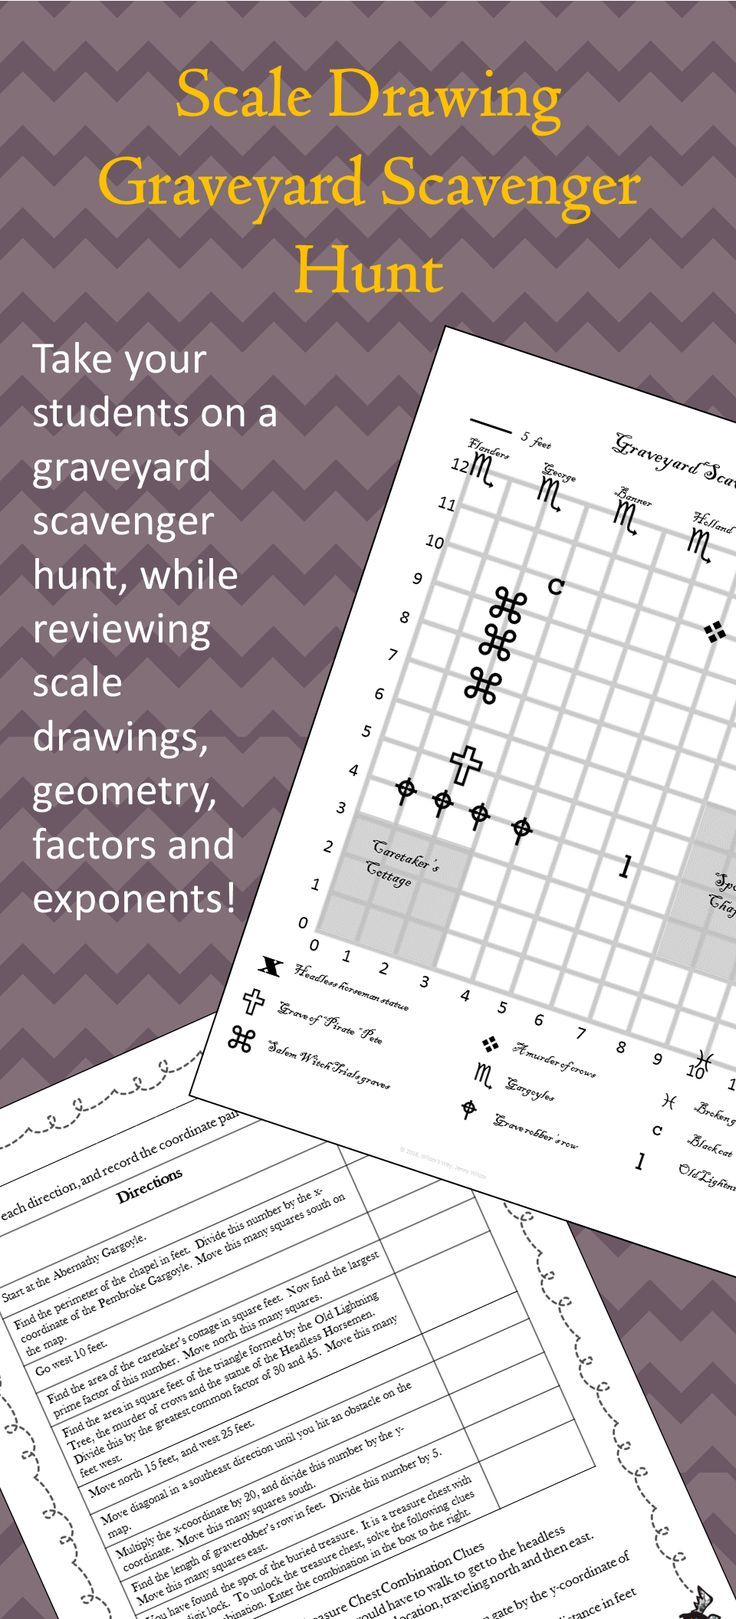 Graveyard Scale Drawing Scavenger Hunt Activity Halloween Math Activities Scale Drawing Holiday Math Activities [ 1619 x 736 Pixel ]